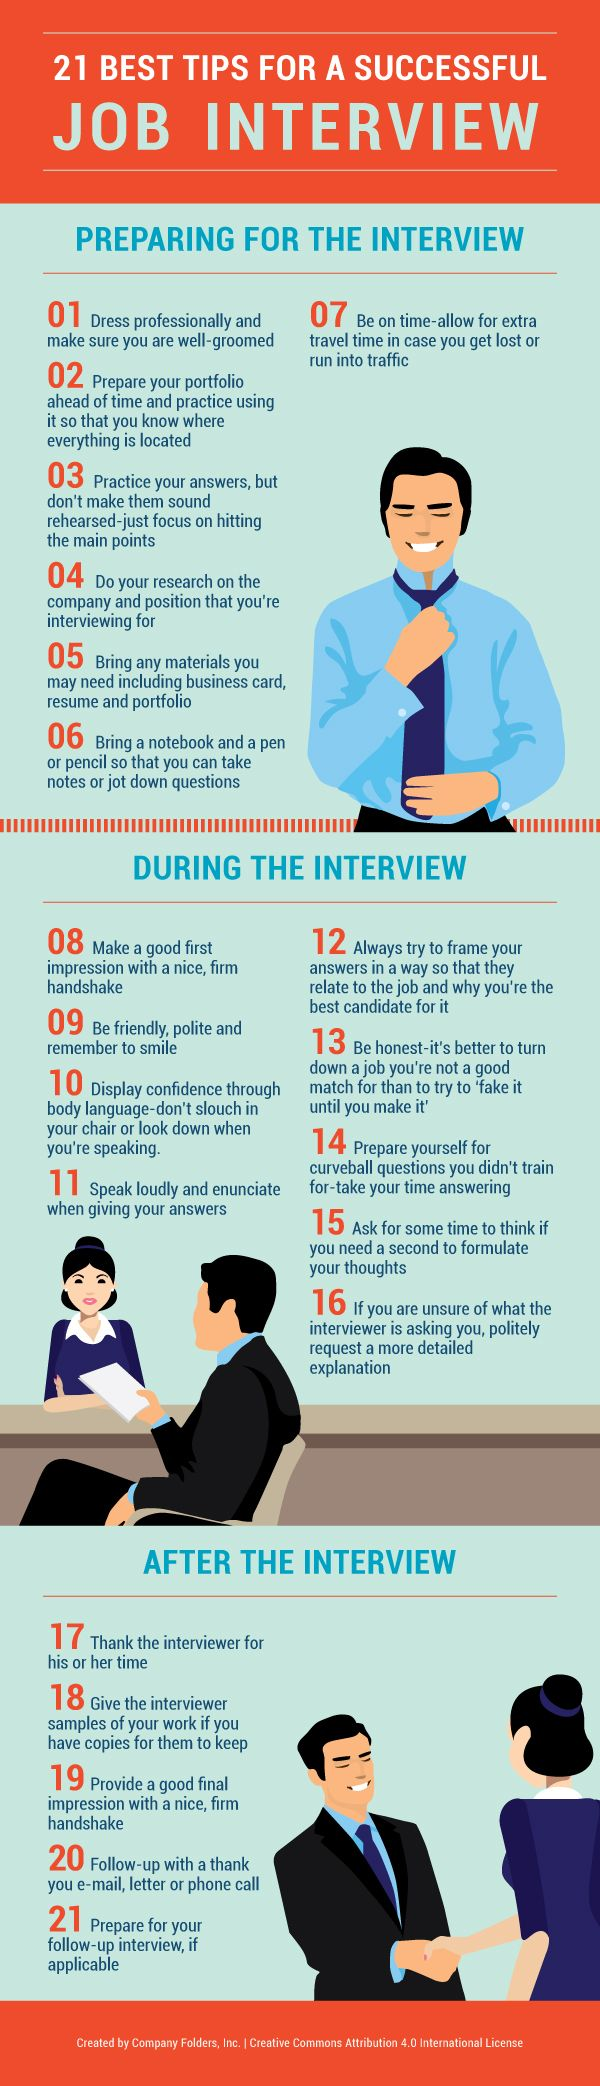 This infographic gives the 21 Best Tips for a Successful Job Interview. Re-pinned for you by #EuropassEurope.